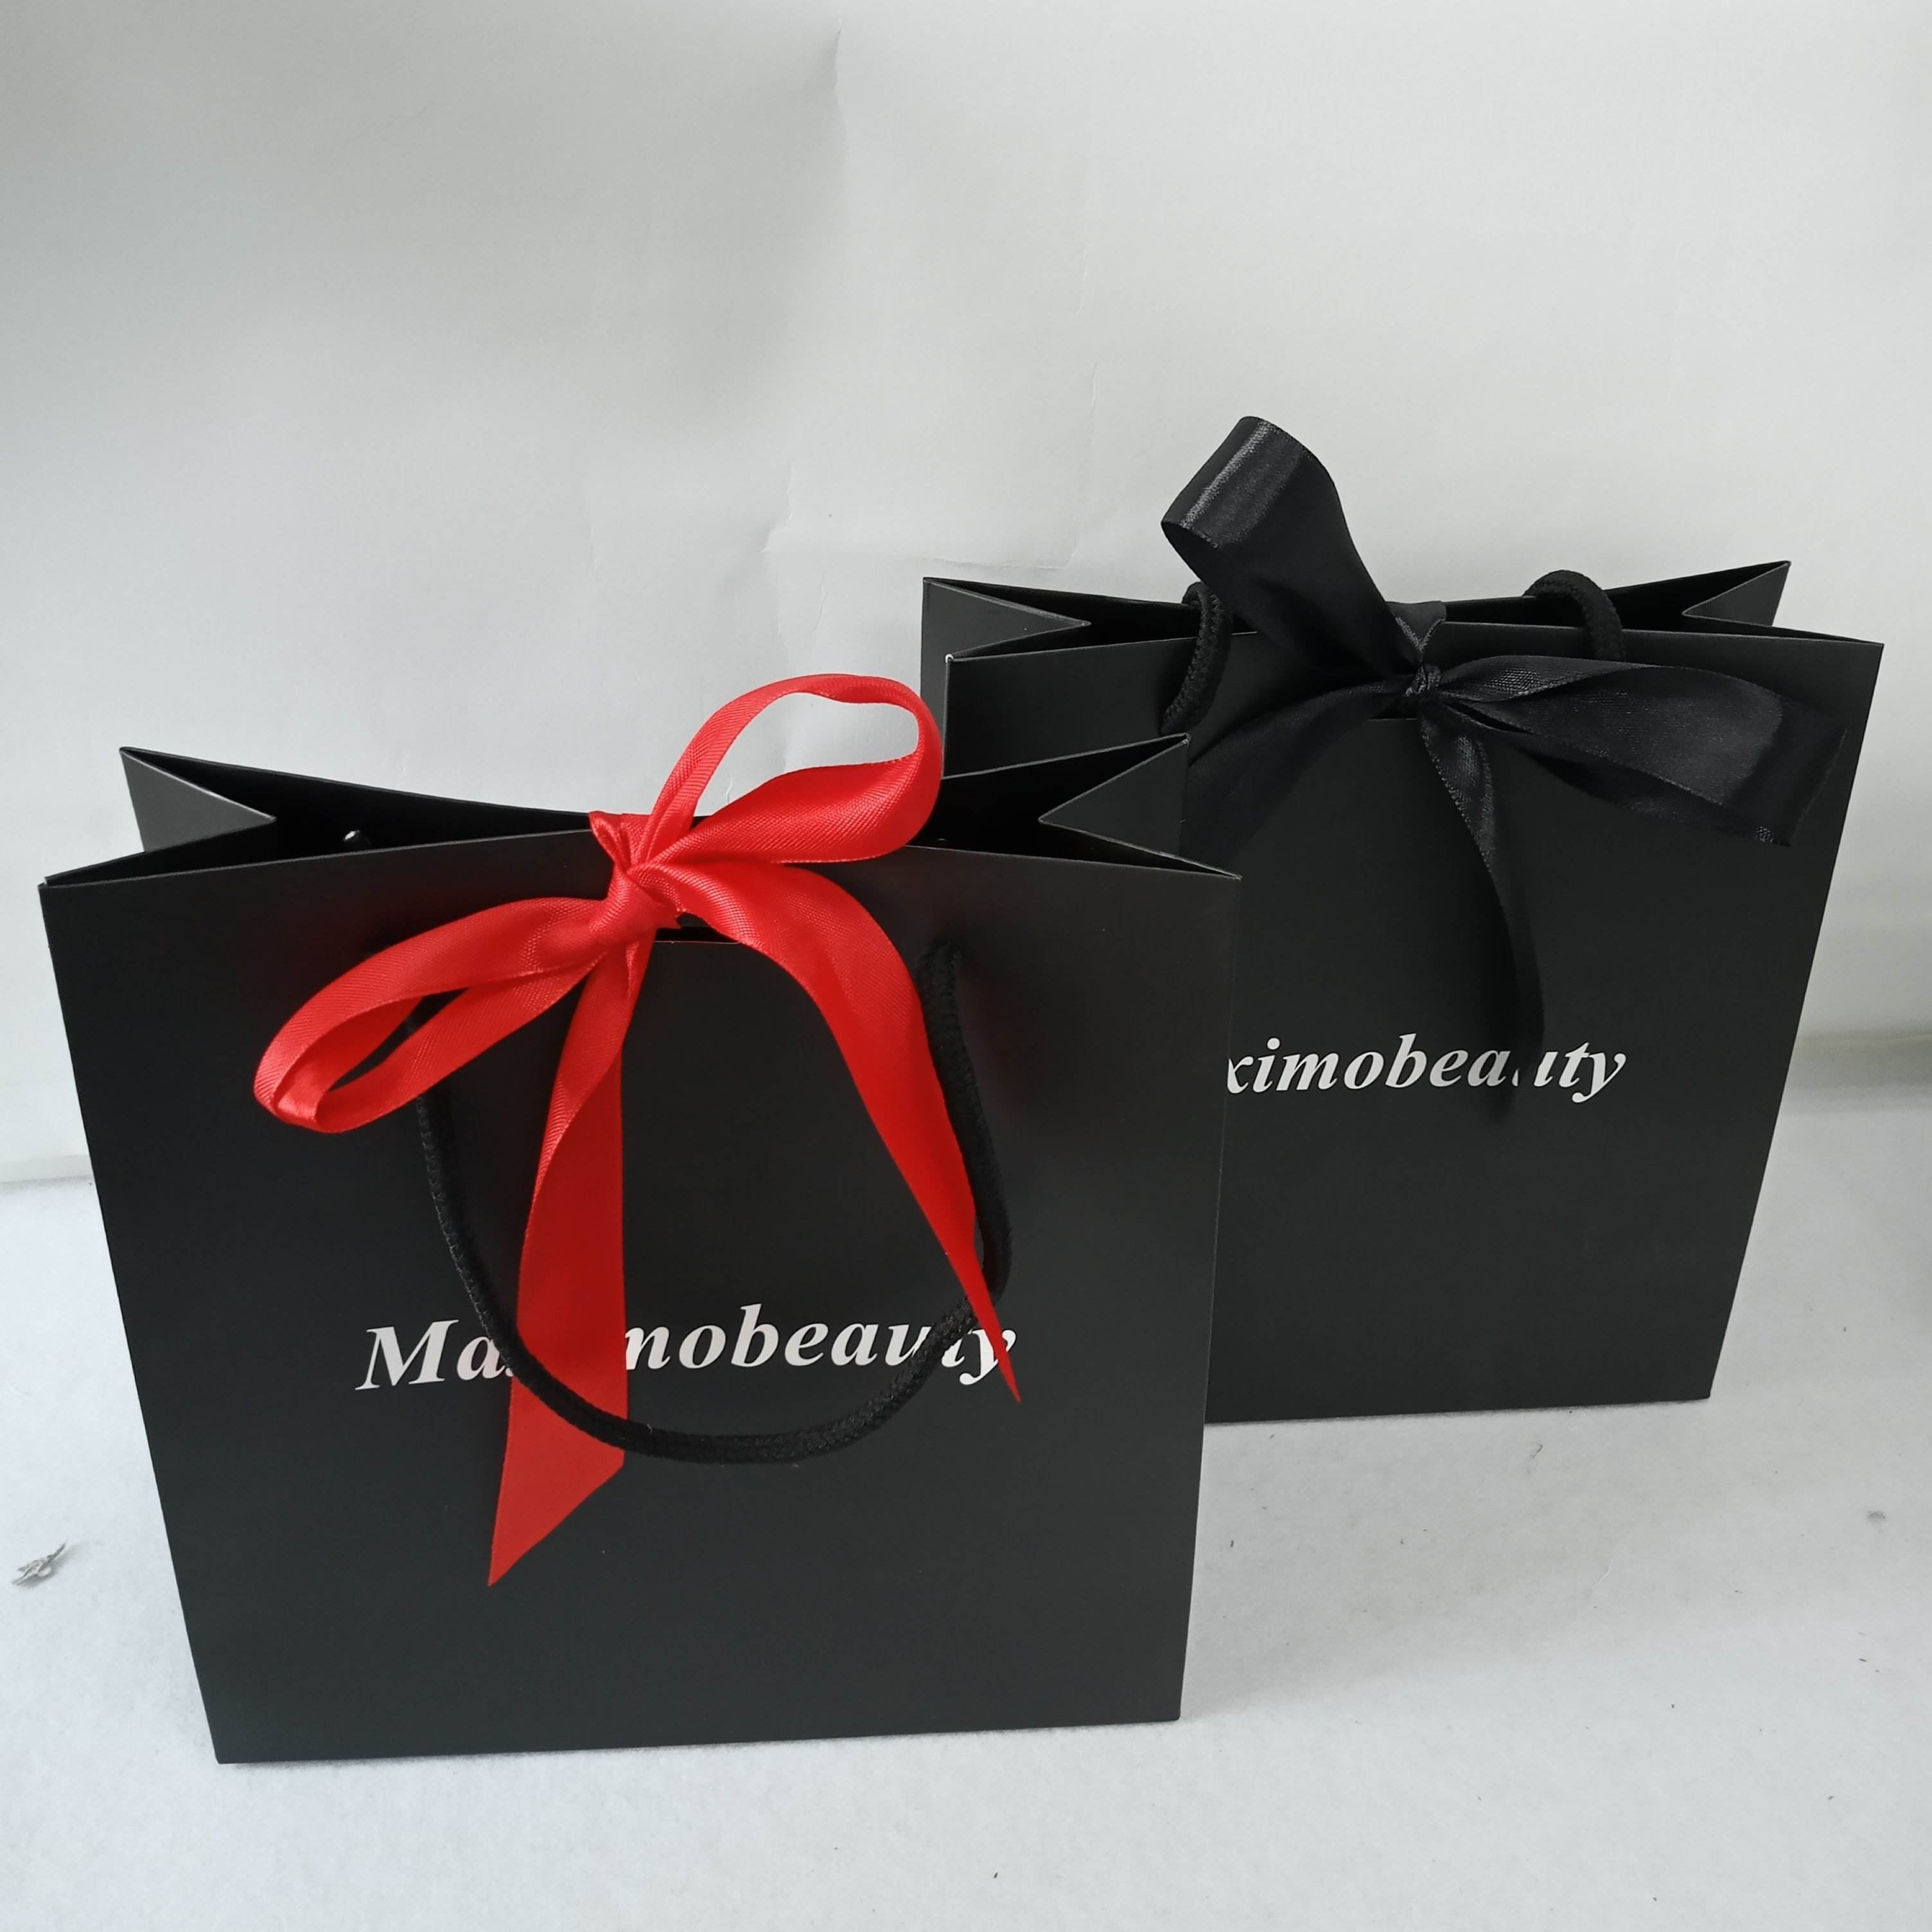 Supplier Design Custom Fancy Packaging Eco Luxury Paper Shopping Bags with Printing Brand Name Logo with ribbon bowknot